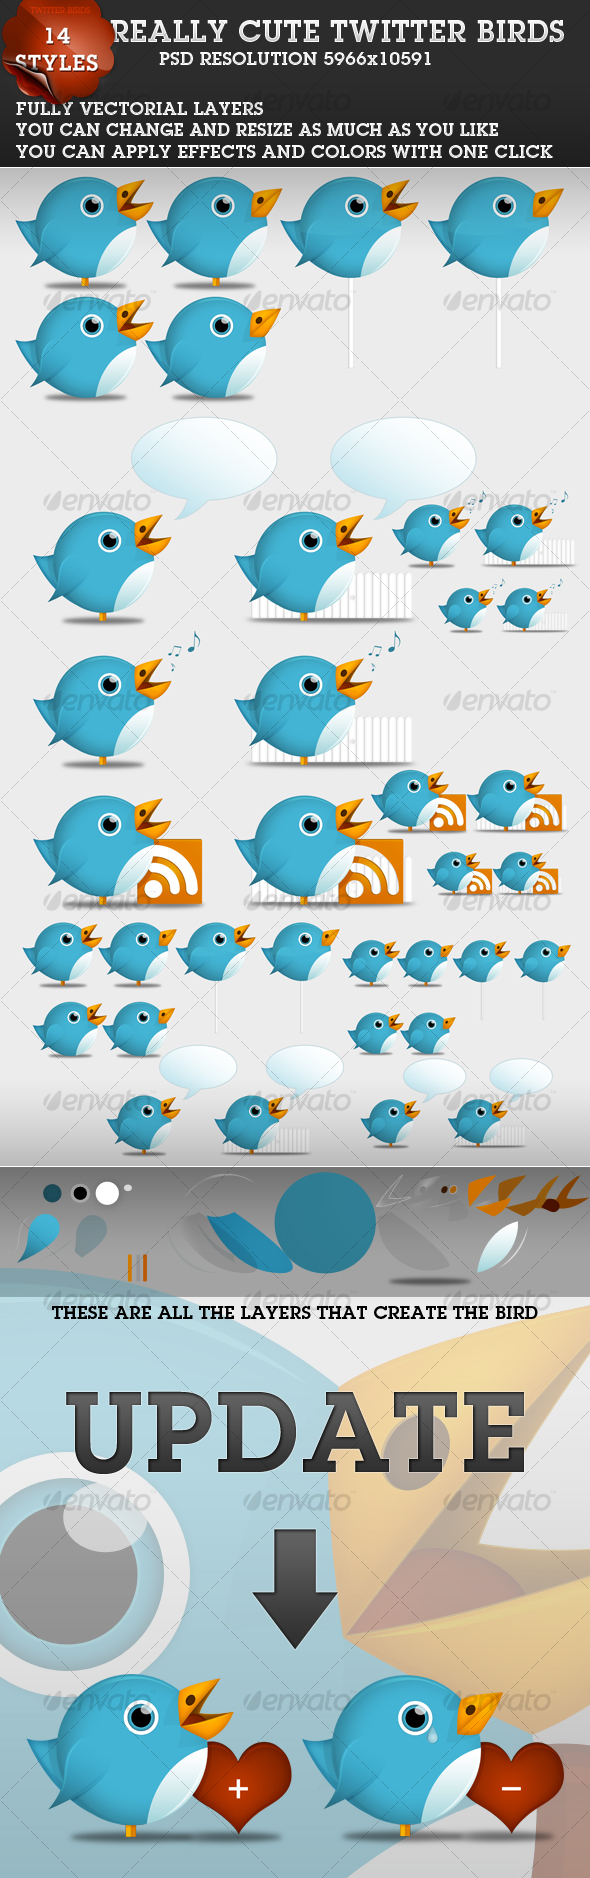 Cute Twitter Birds 1.1 - Characters Illustrations